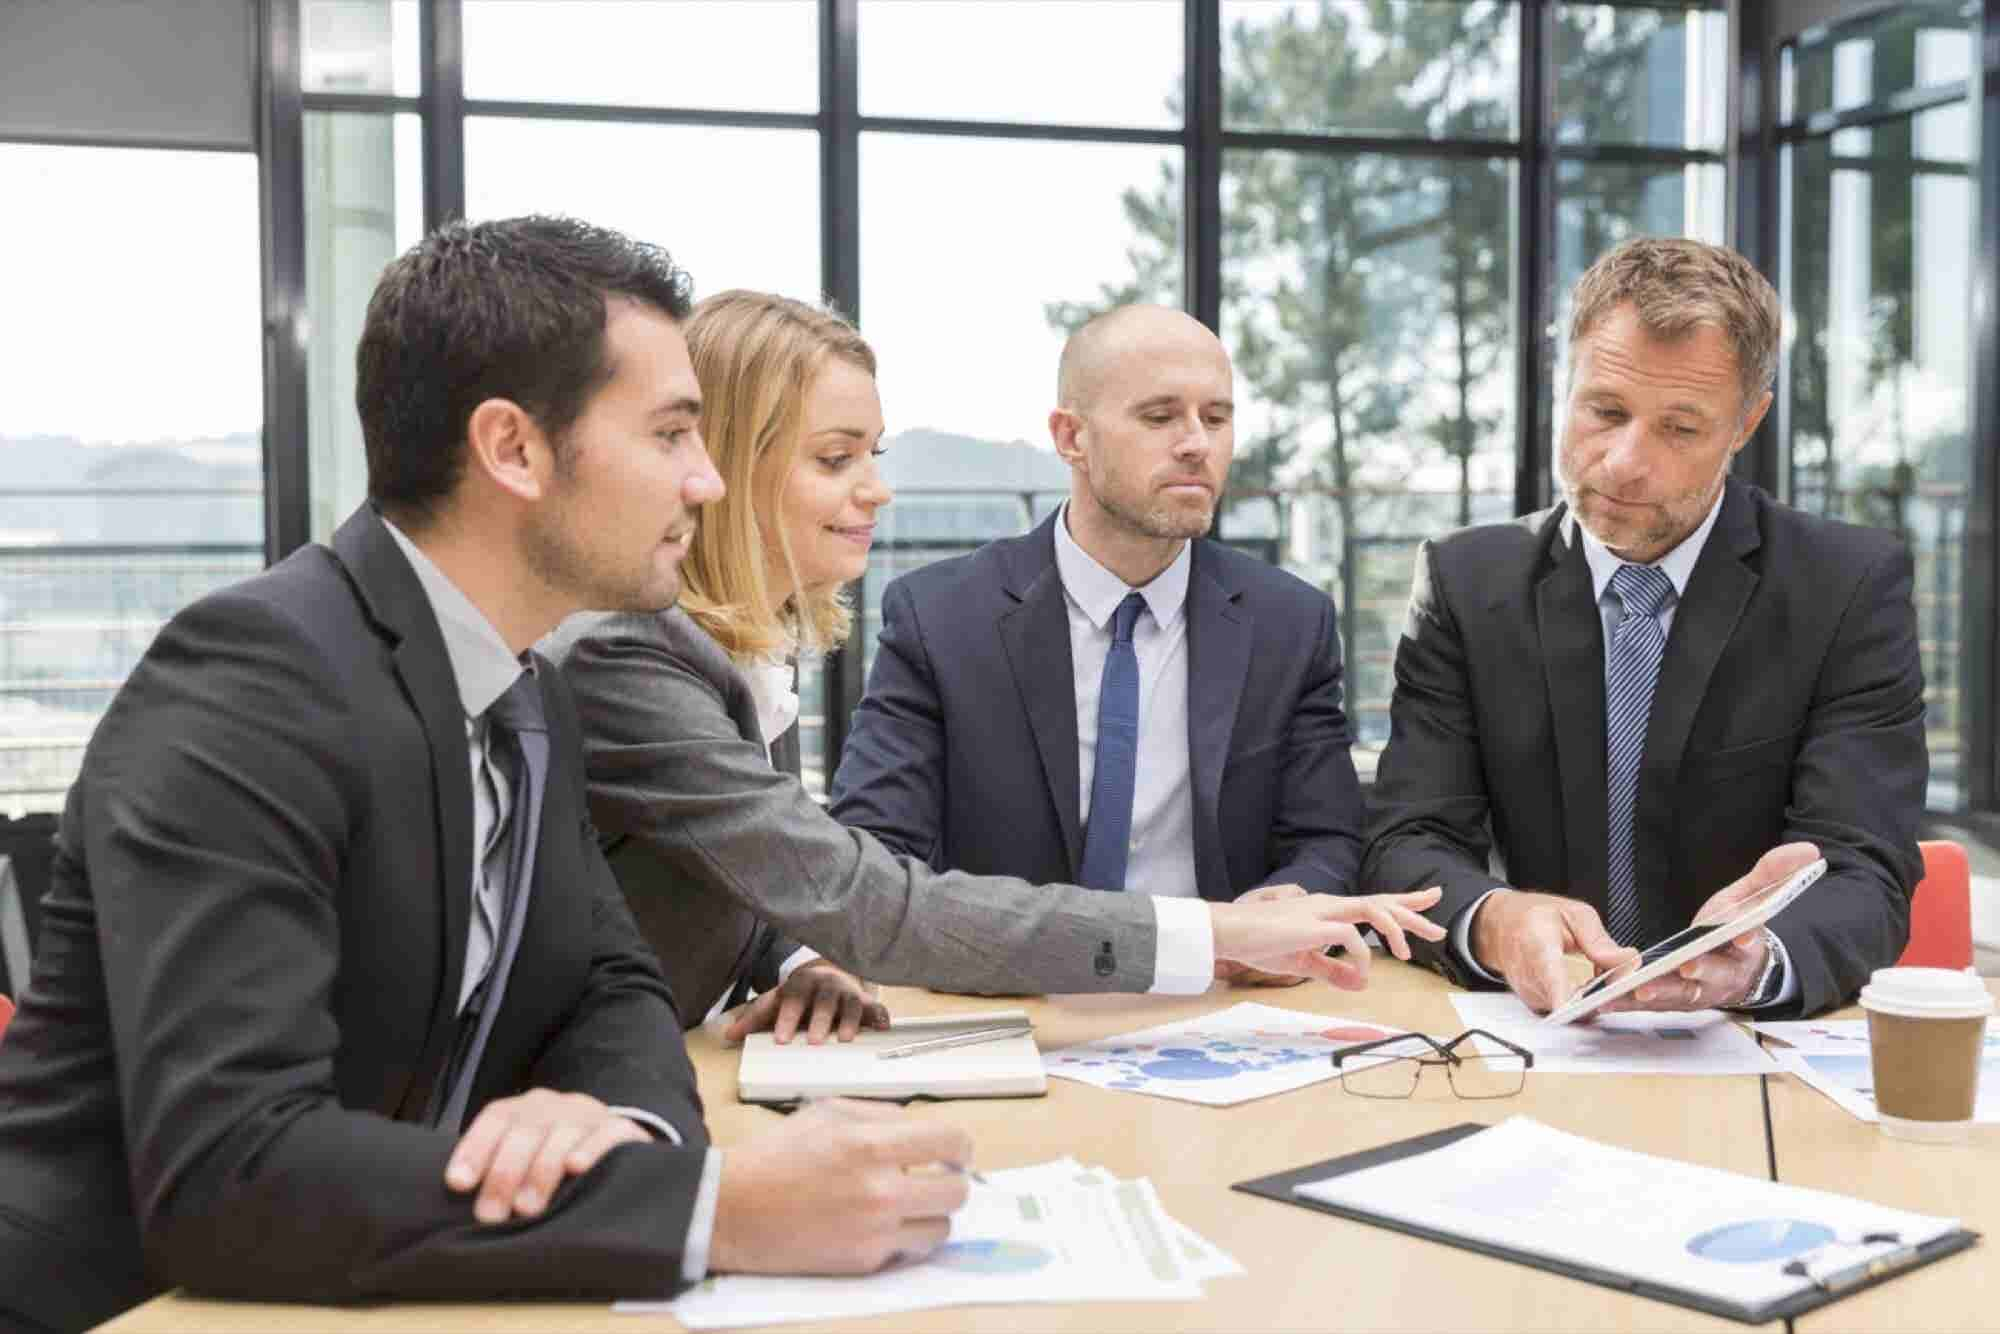 Why More Sales Leaders Are Focusing on Sales Coaching